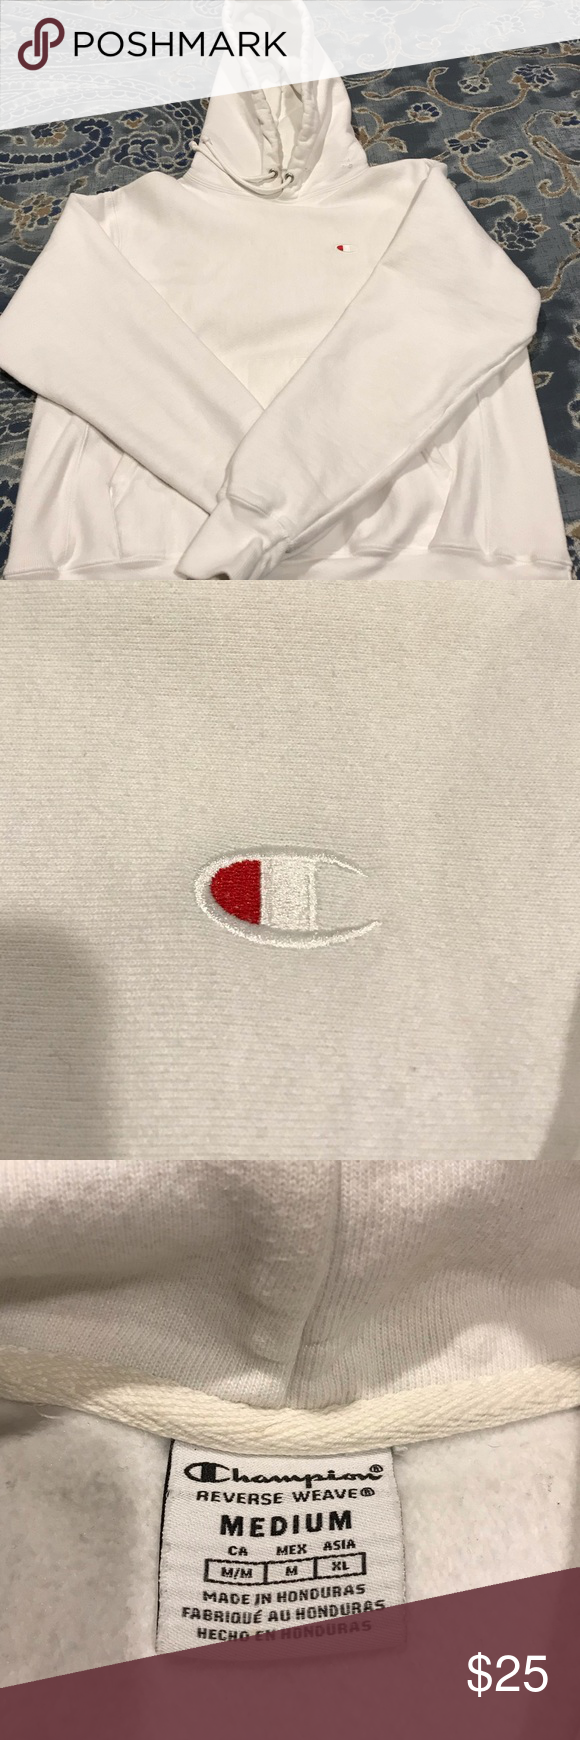 White Champion hoodie Condition is worn. Fits like a men's small. Rips as pictured on the hood. No major stains. Champion Tops Sweatshirts & Hoodies #championhoodie White Champion hoodie Condition is worn. Fits like a men's small. Rips as pictured on the hood. No major stains. Champion Tops Sweatshirts & Hoodies #championhoodie